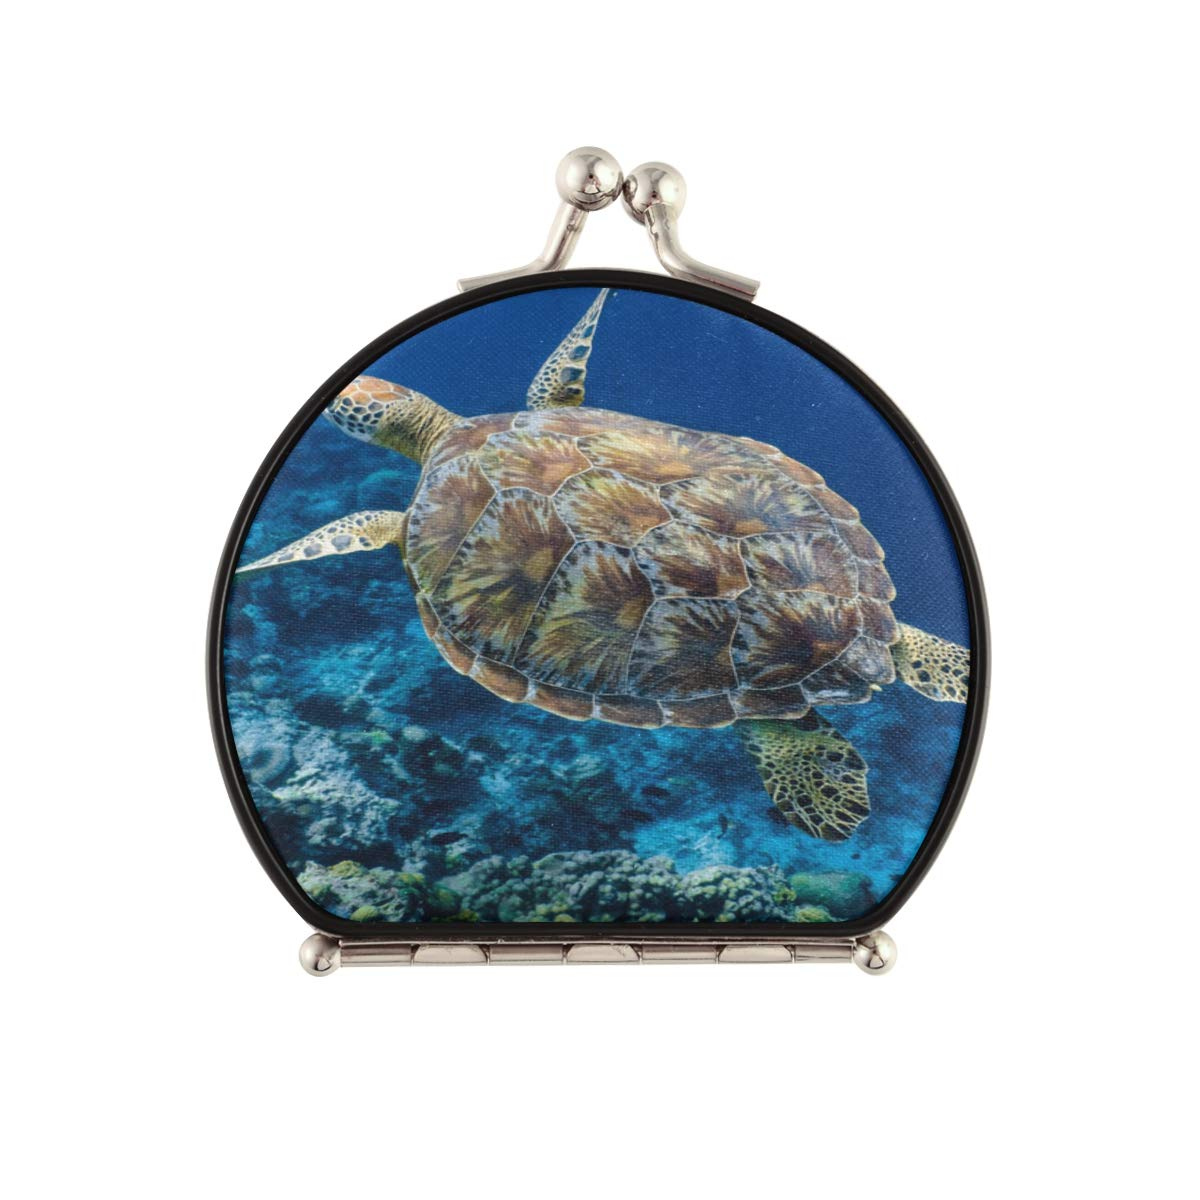 MirrorsForMakeupFlexibleTurtleInBlueOceanSmallPortableMirrorDoub Special price for a limited time All items in the store